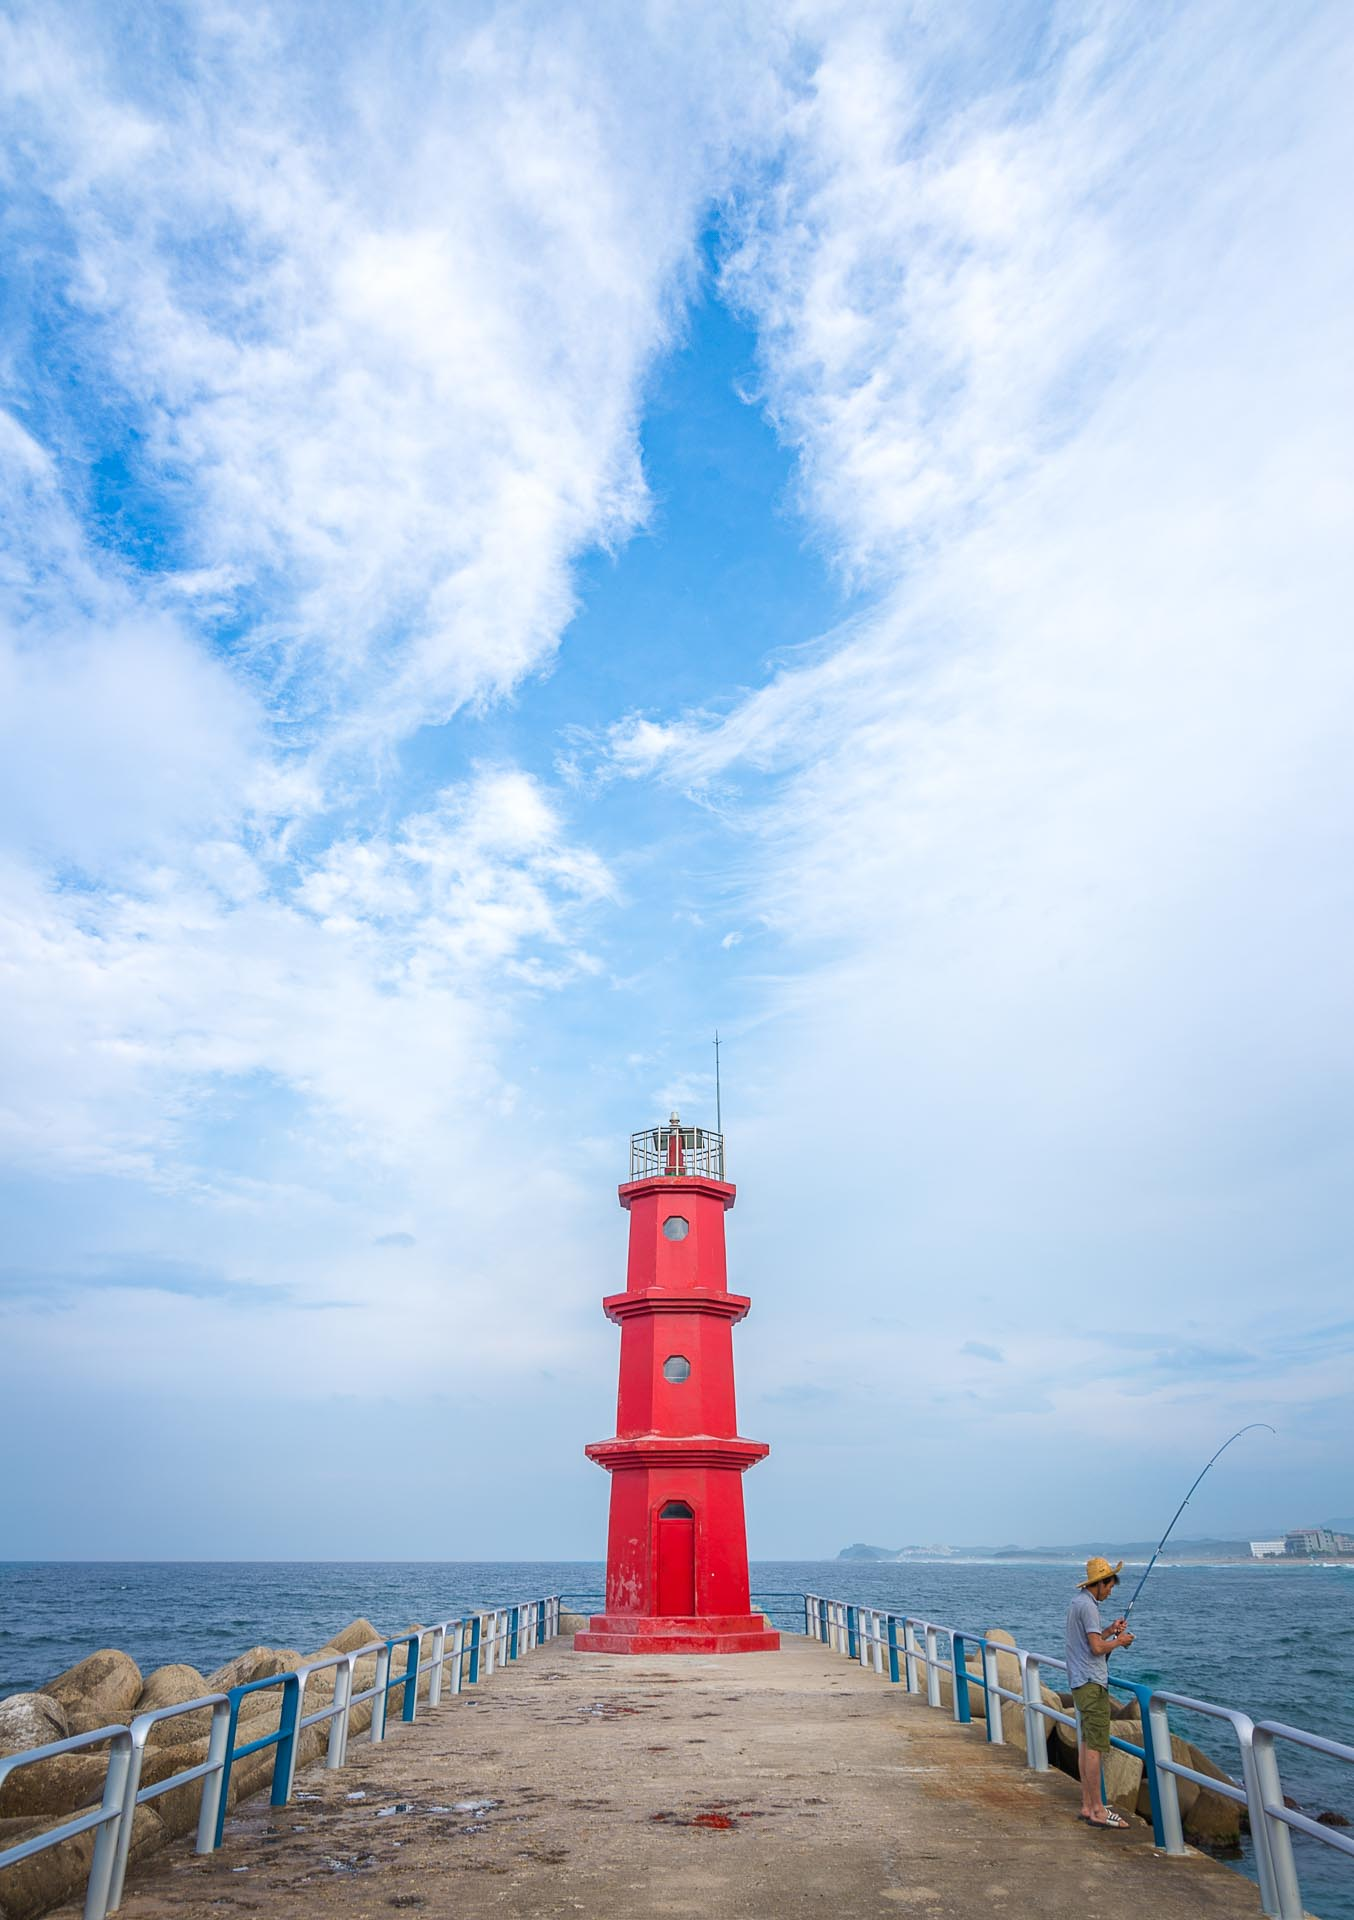 A small red lighthouse at Yang Yang beach. South Korea